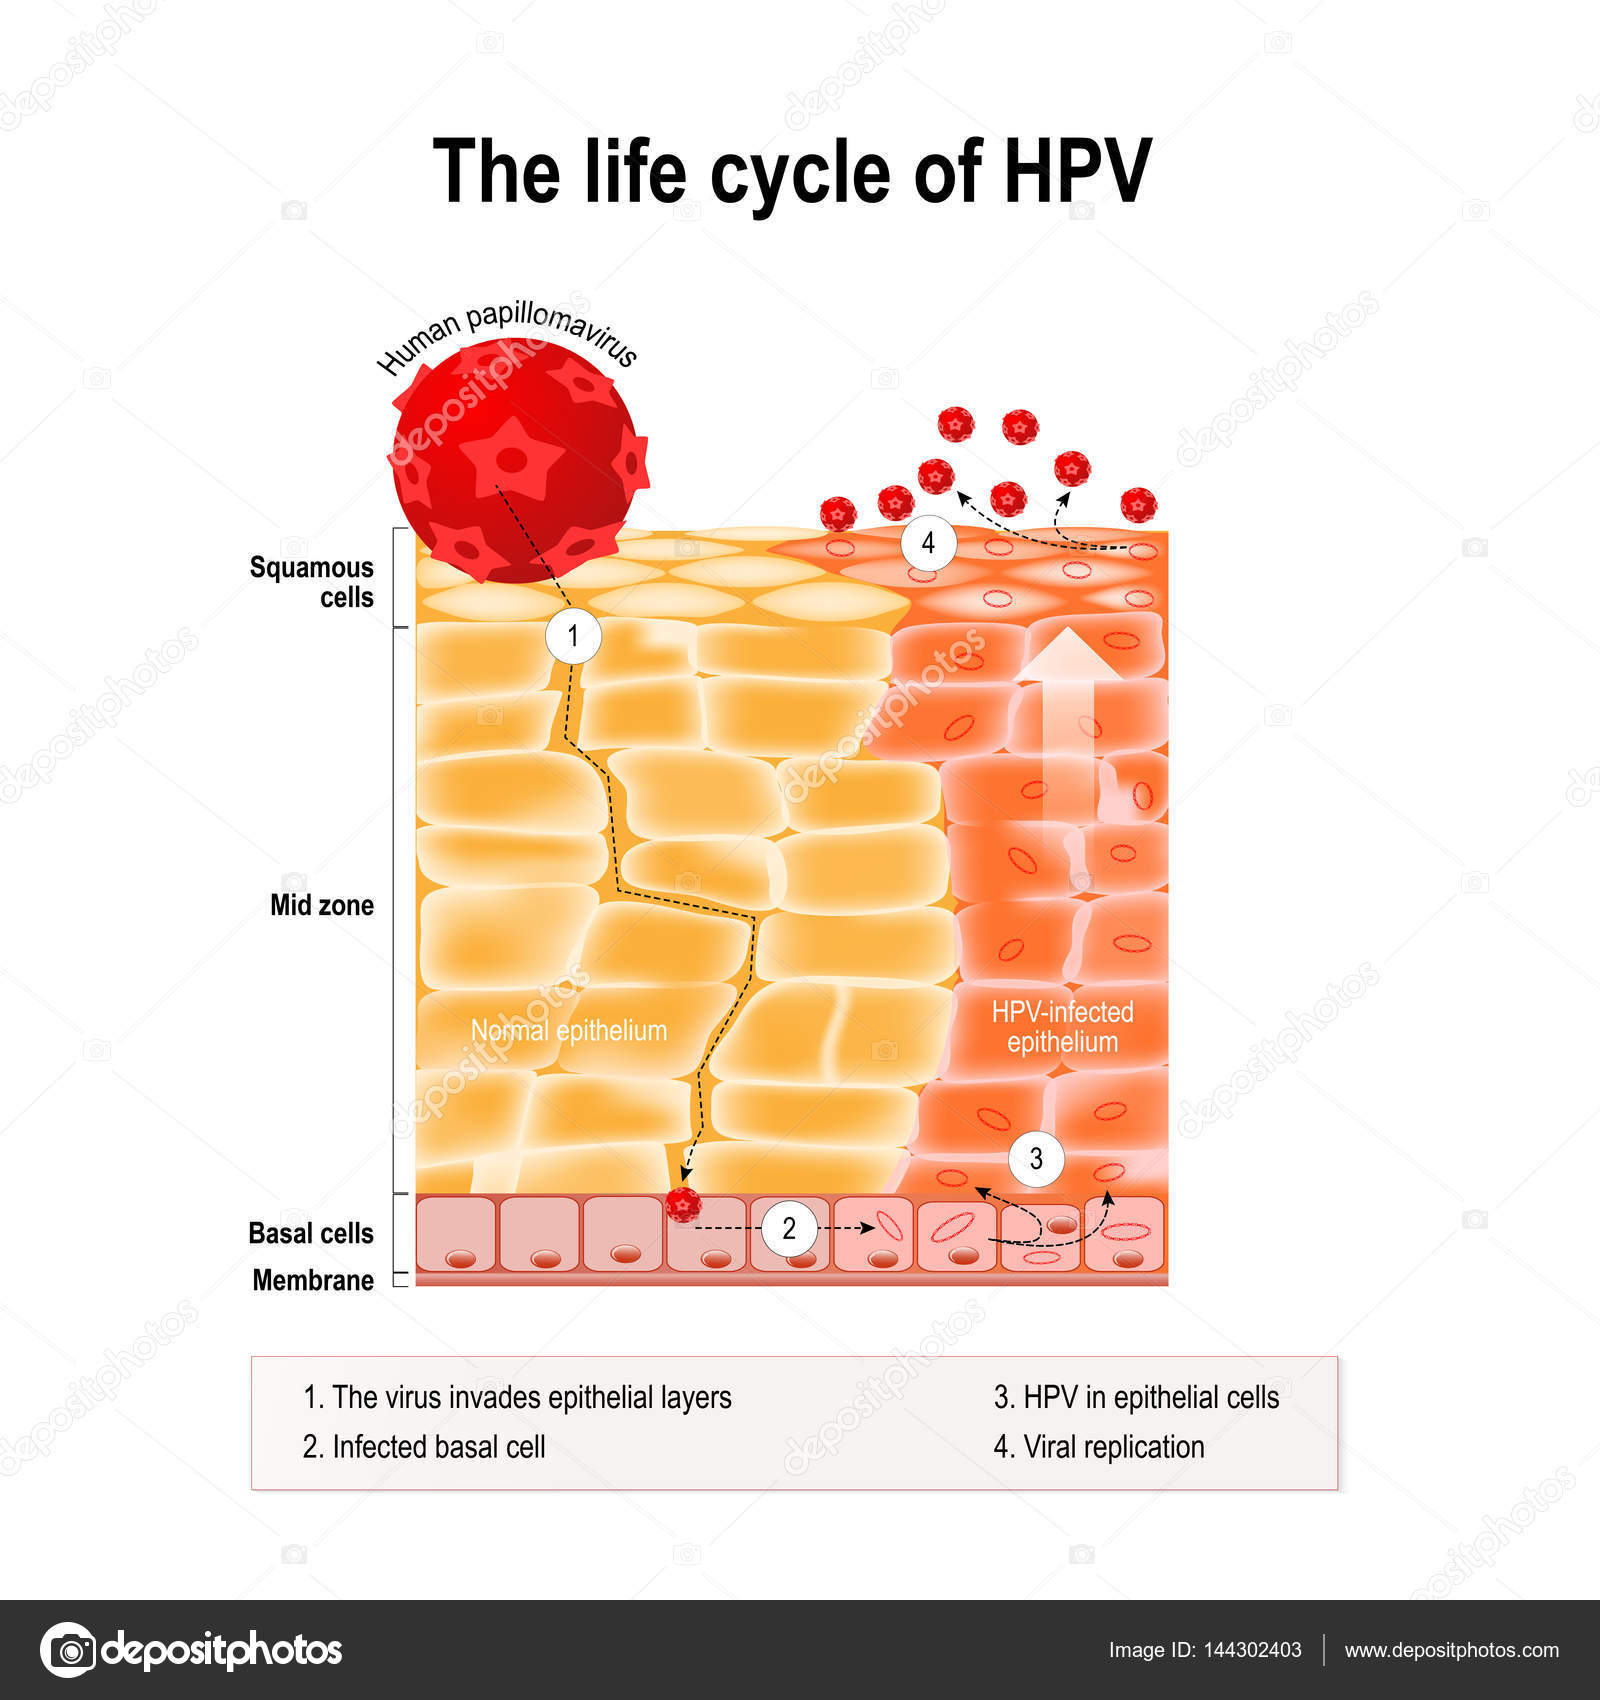 hpv virus life cycle)